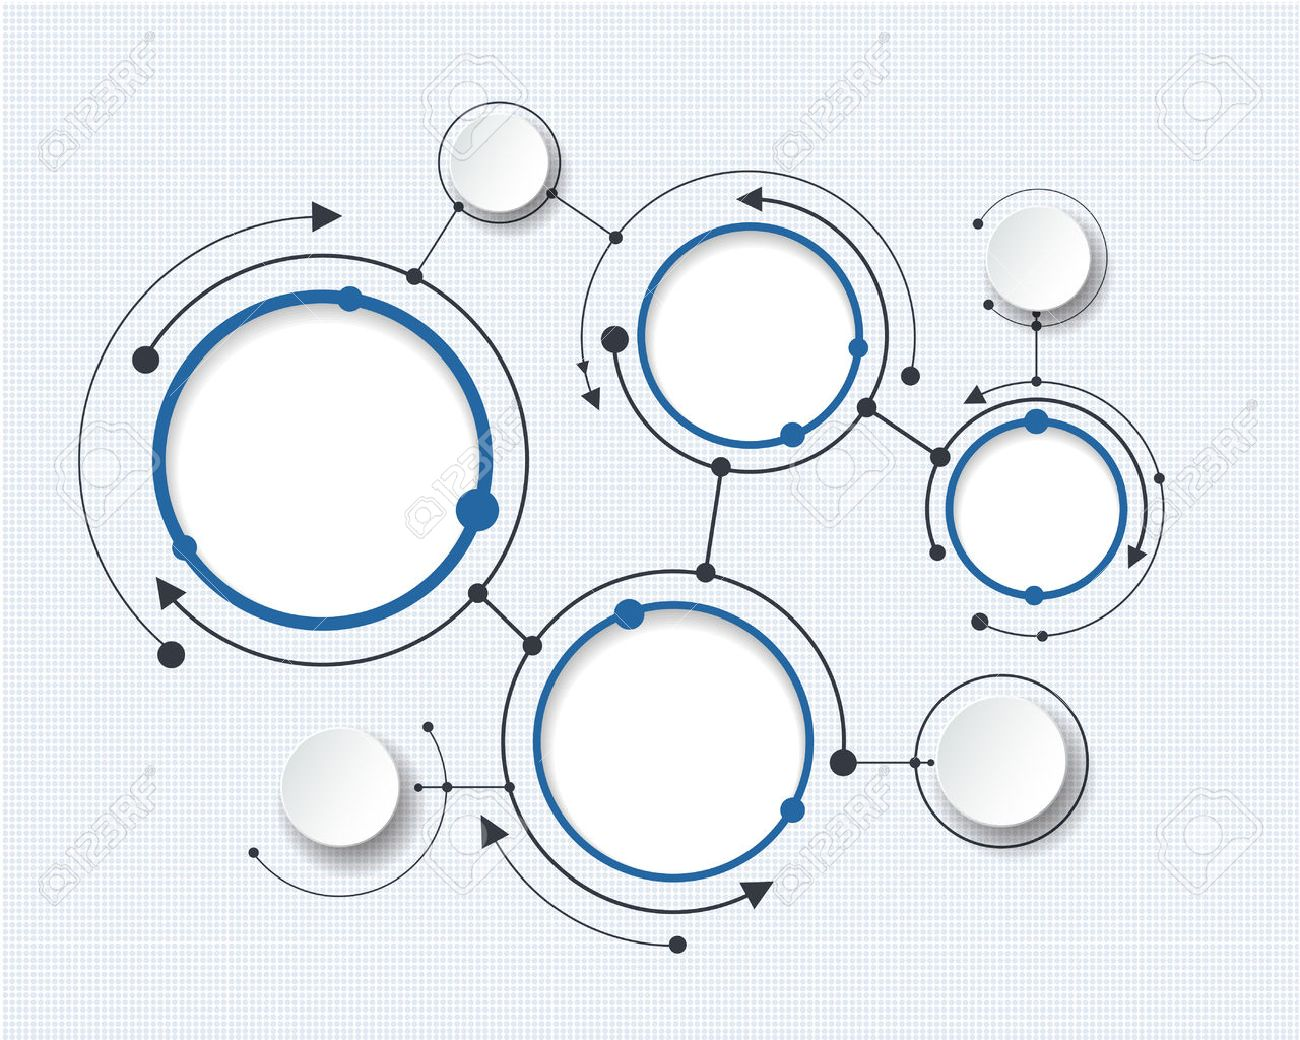 Abstract molecules with 3d paper circle and blank space for your content, infographic template, communication, business, network and web design. Vector illustration social media technology concept Stock Vector - 47154078